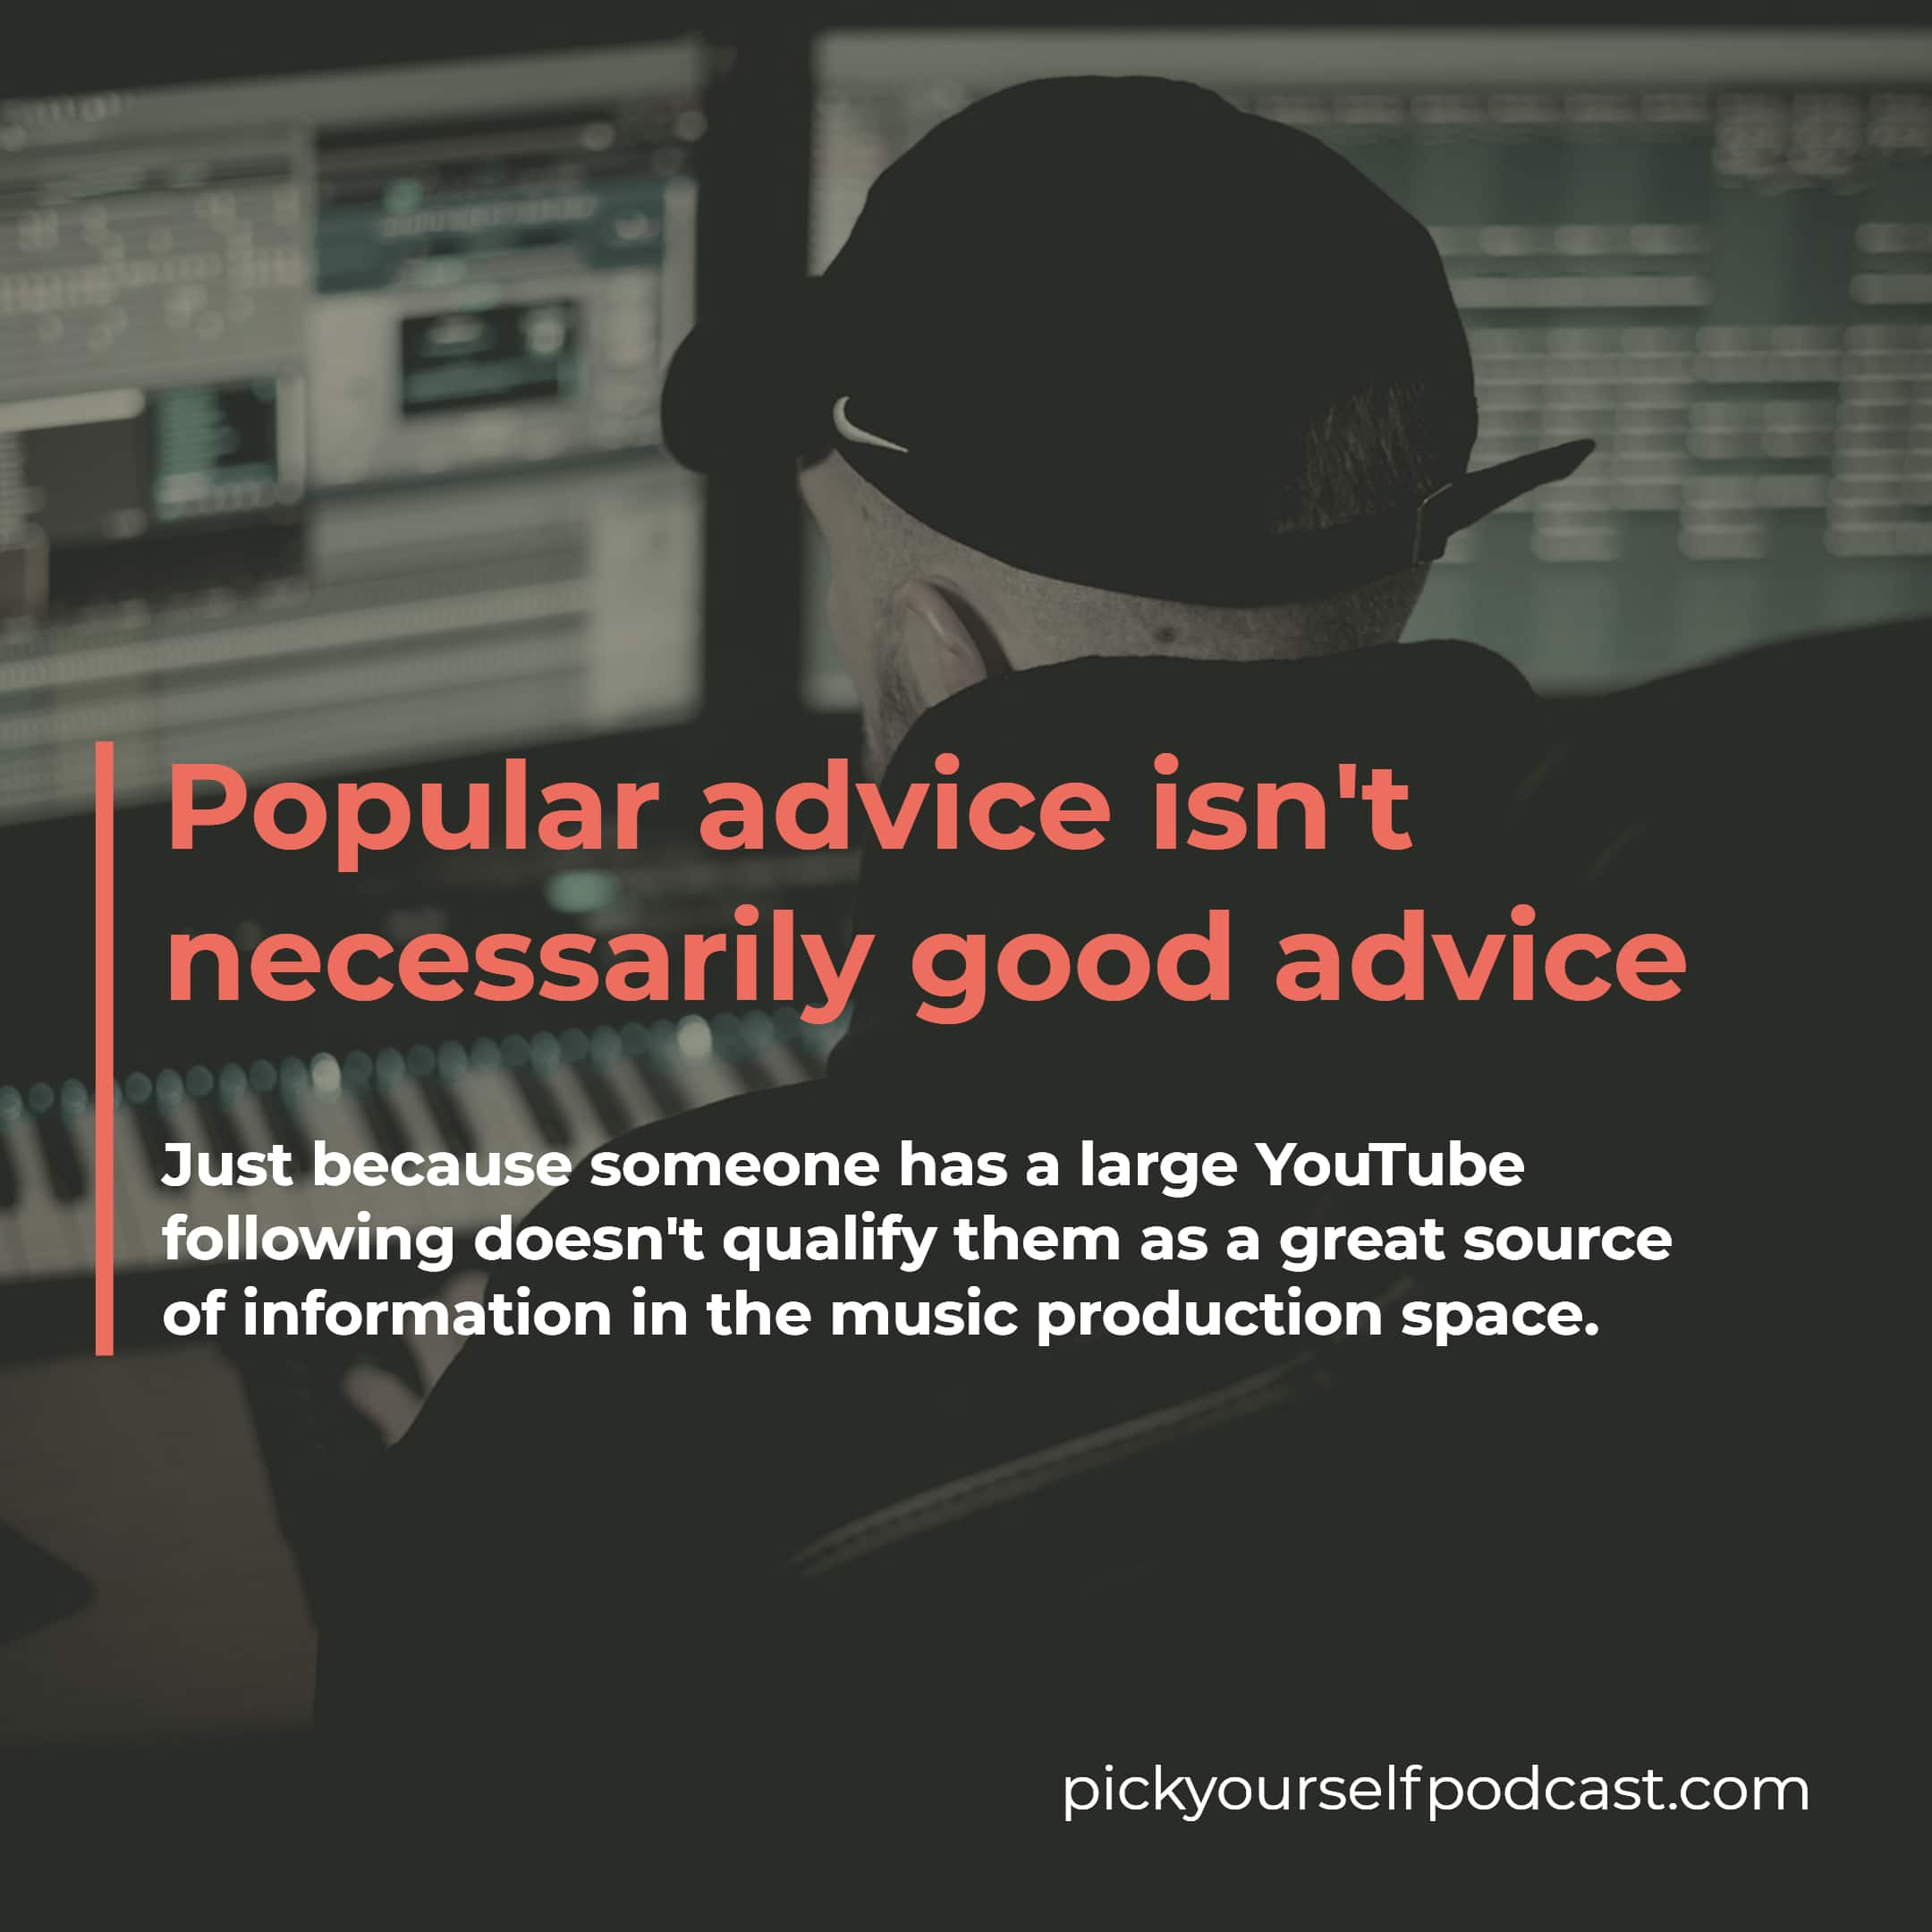 Just because someone has a large YouTube audience doesn't mean that they're a great source for music production tutorials.